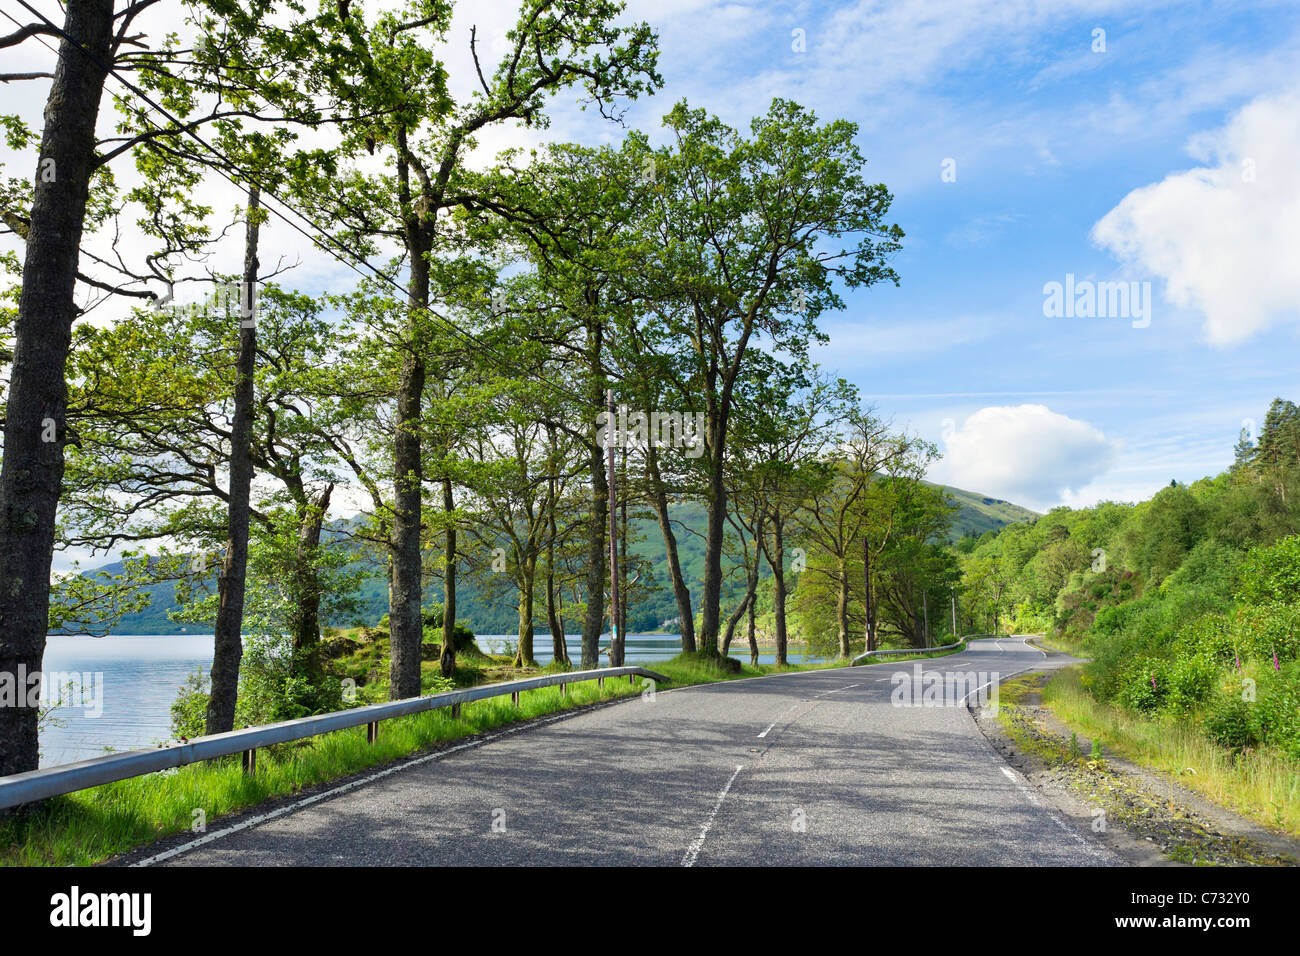 The A82 north of Luss on the west bank of Loch Lomond, Argyll and Bute, Scotland, UK - Stock Image